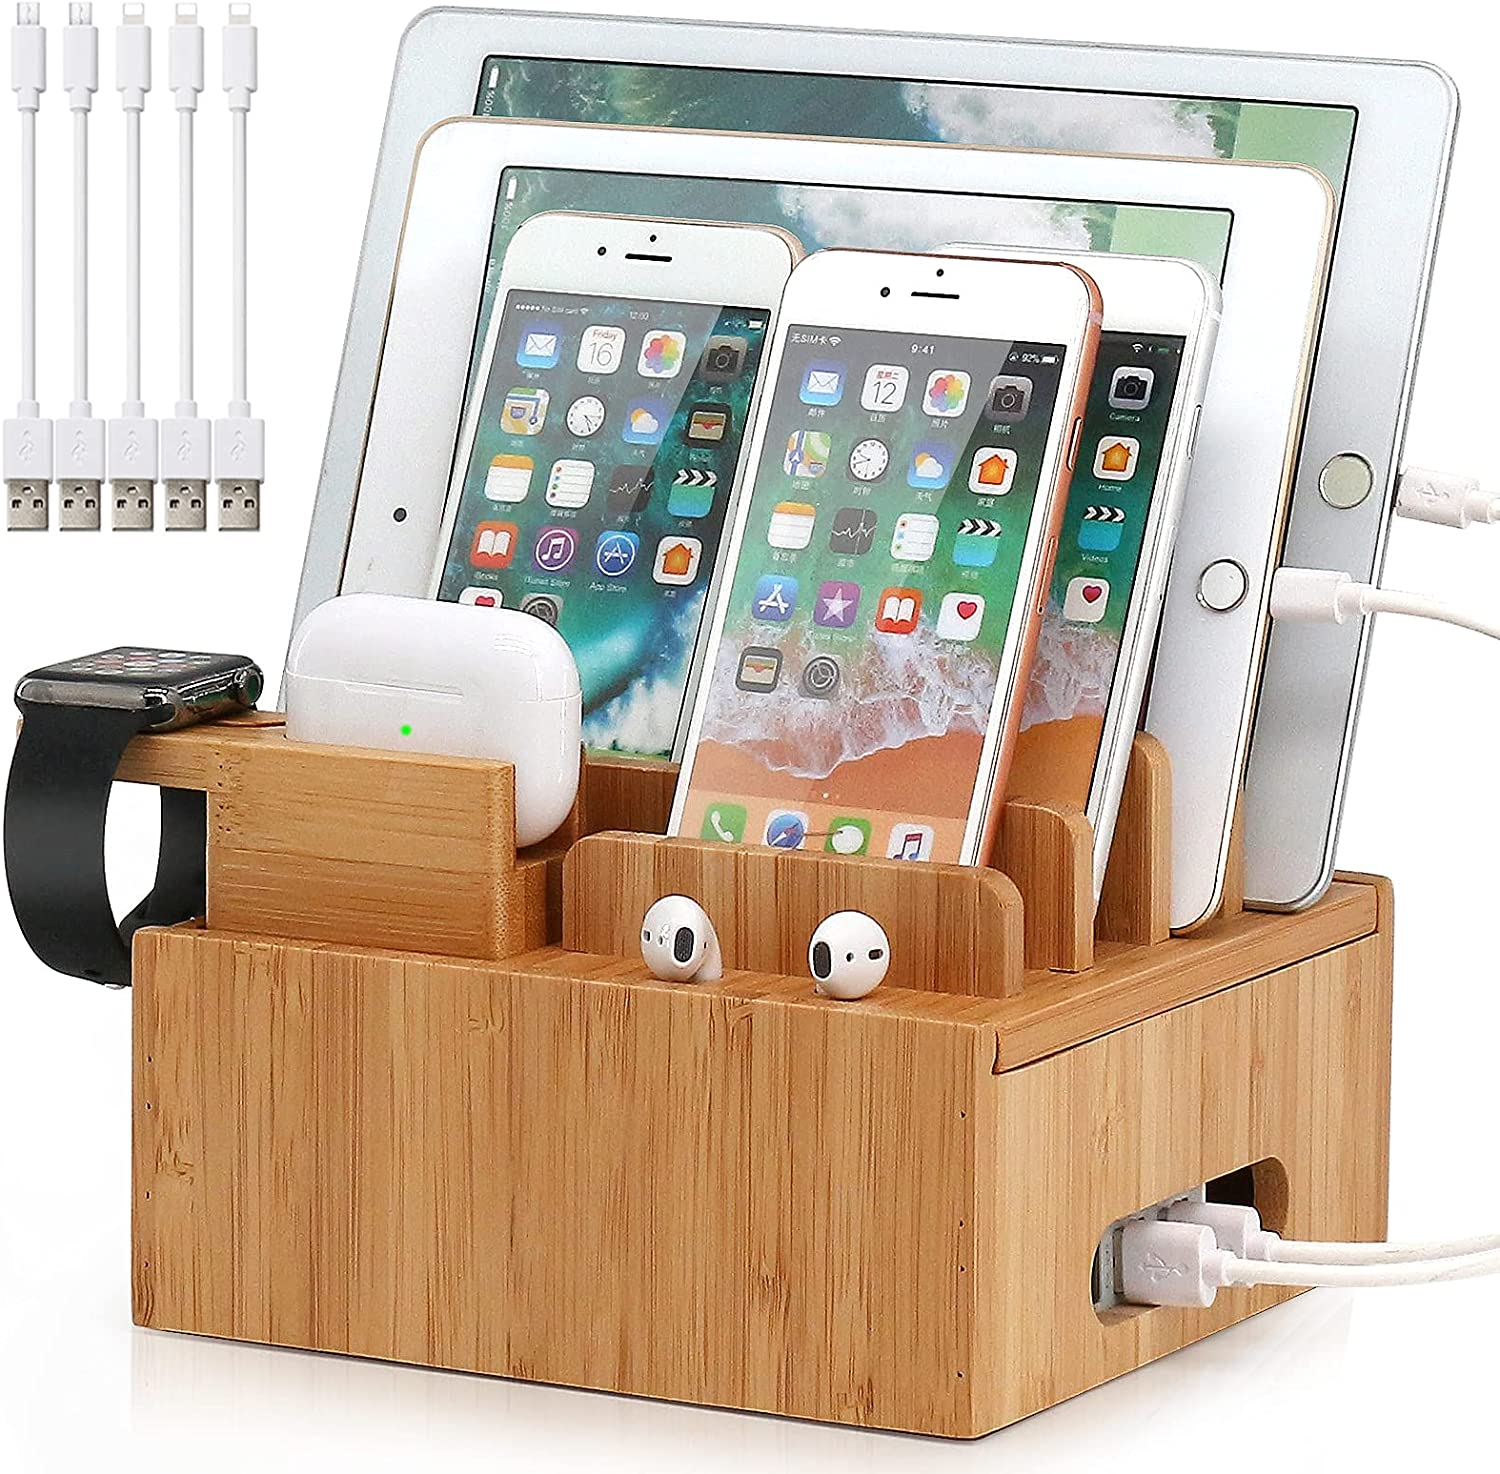 Pezin & Hulin Bamboo Charge Station Organizer for Multiple Devices, Desktop Docking Station Compatible with iPhone, iPad, AirPods, iWatch (Included Watch & AirPods Stand, 5 Cables,NO Charger HUB)